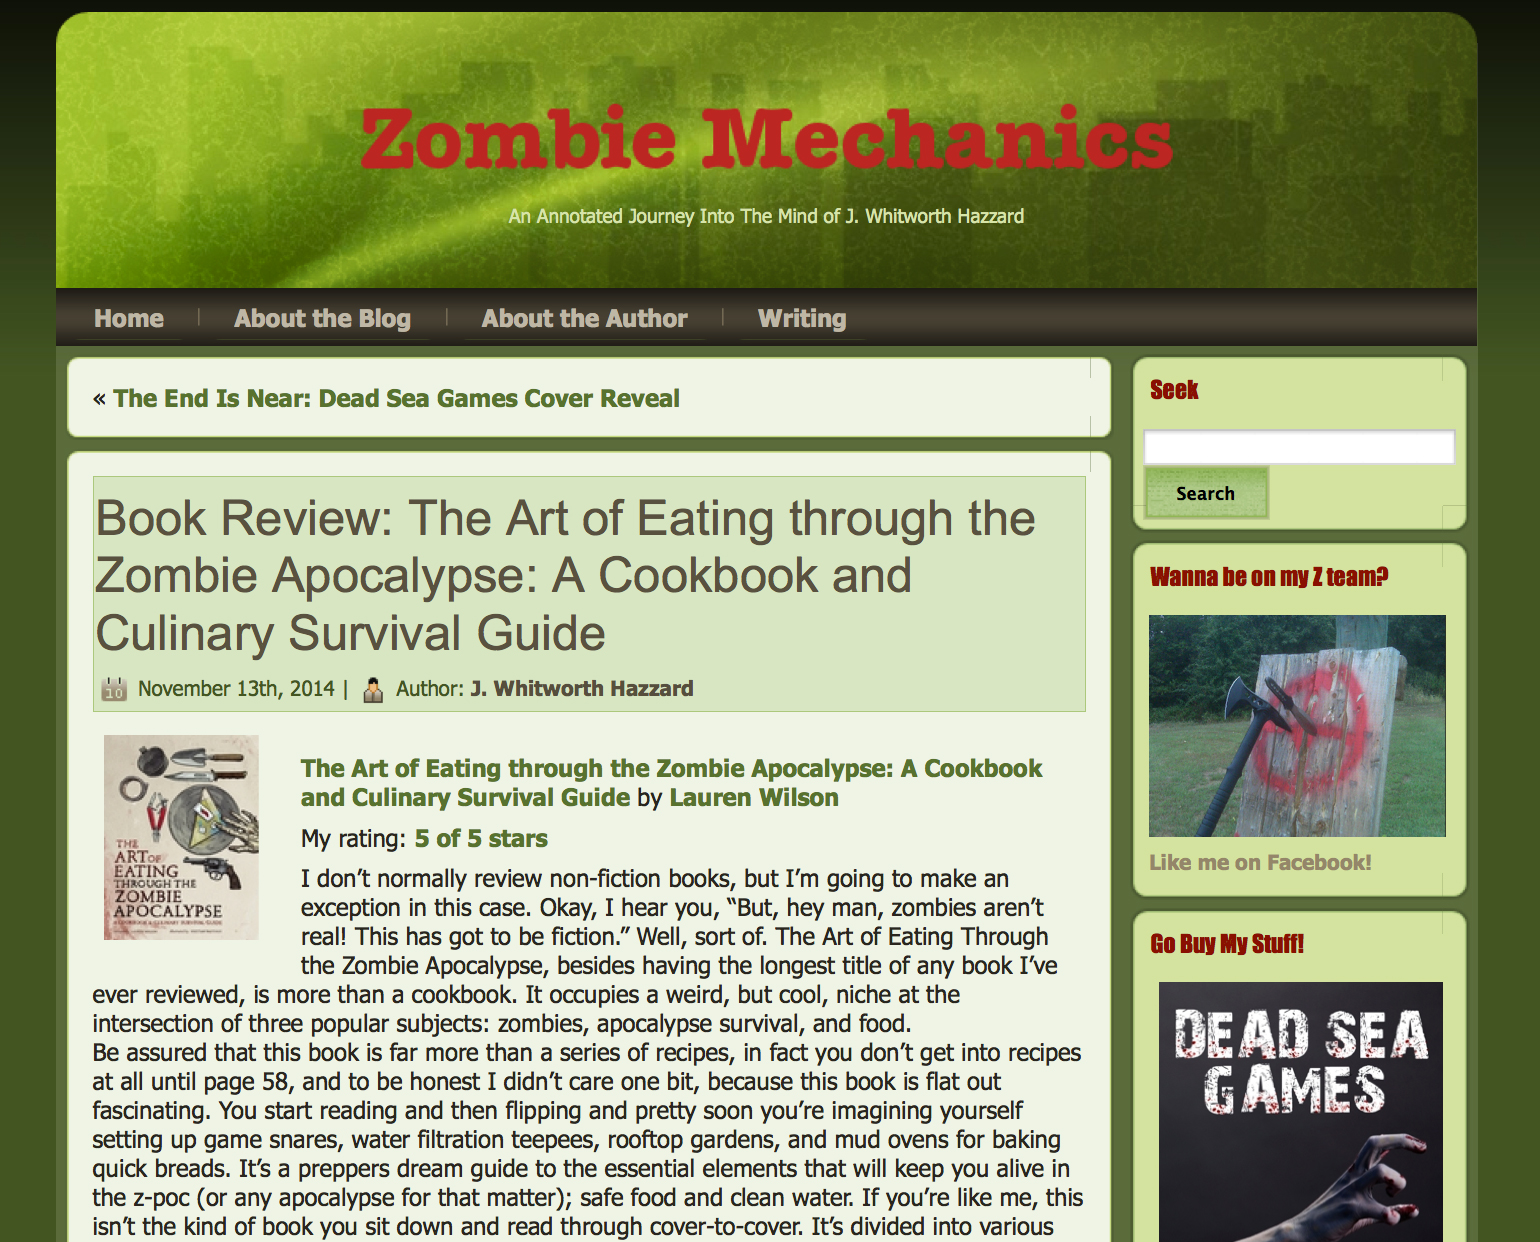 Review of The Art of Eating Through the Zombie Apocalypse by J. Whitworth Hazzard.